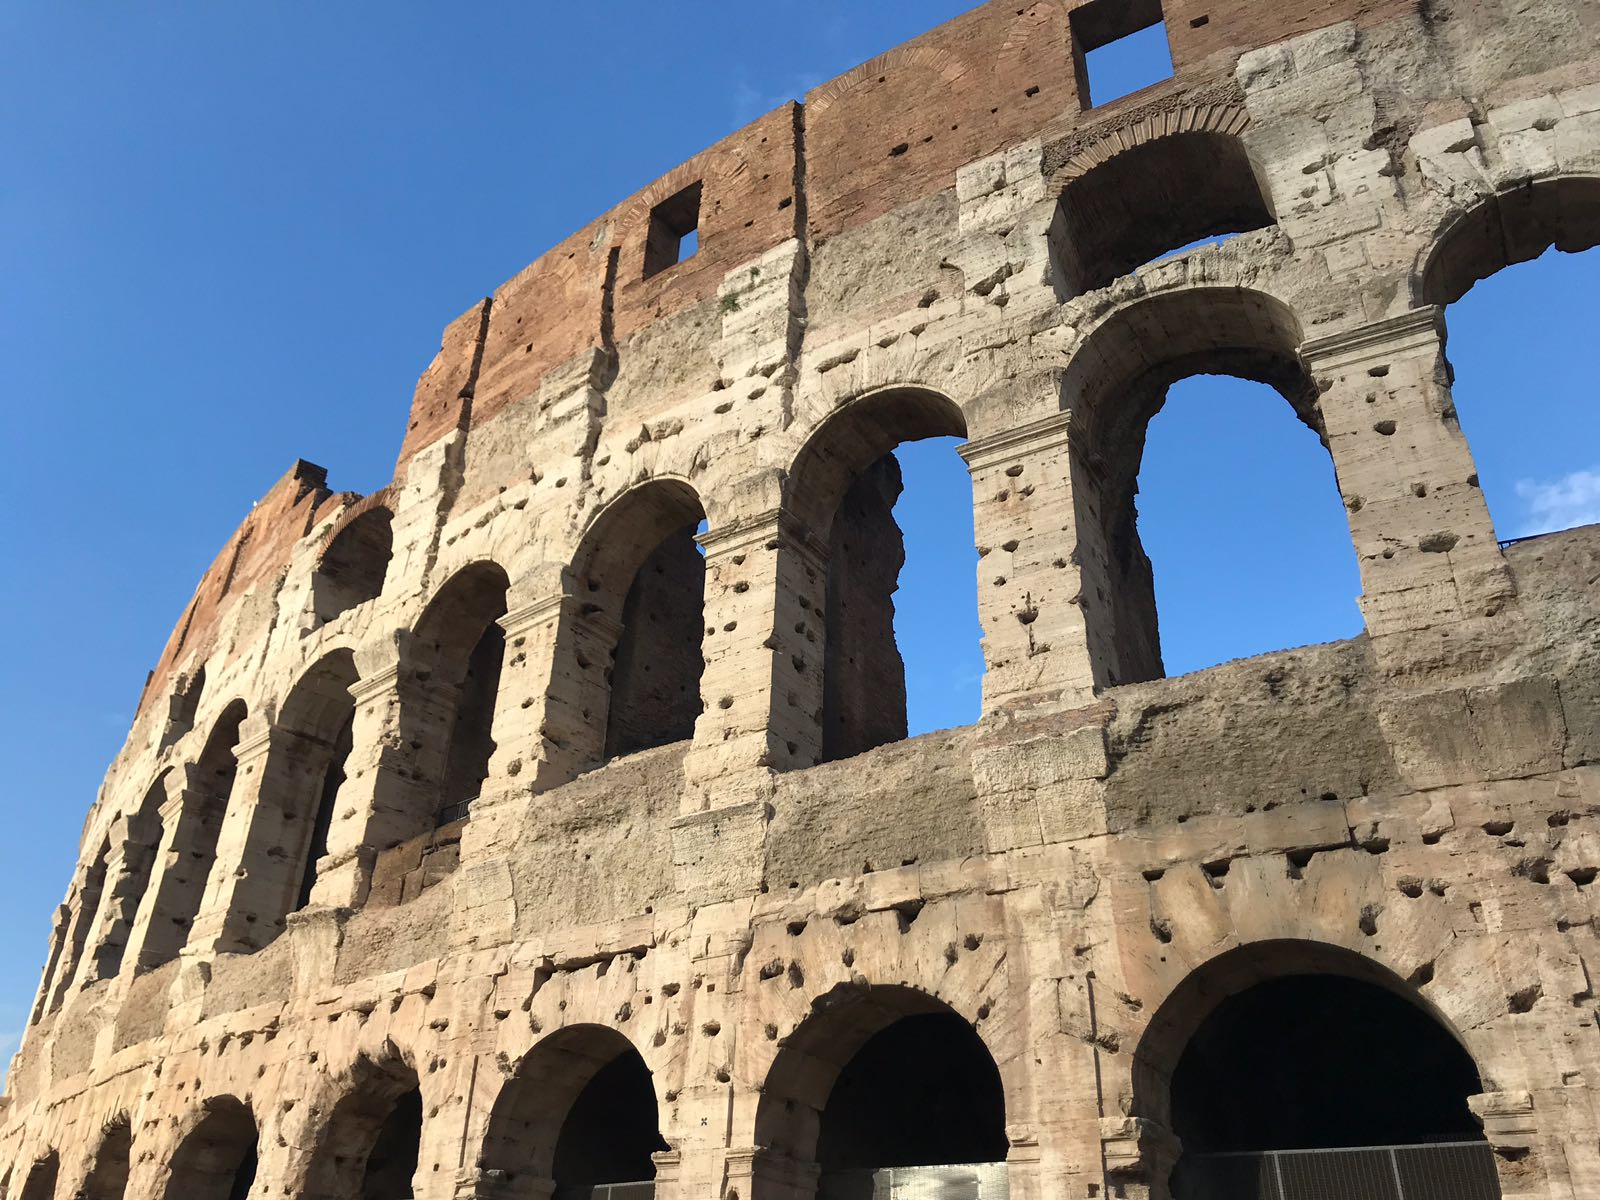 The Colosseum in Rome from the outside showing arches with less reconstruction completed